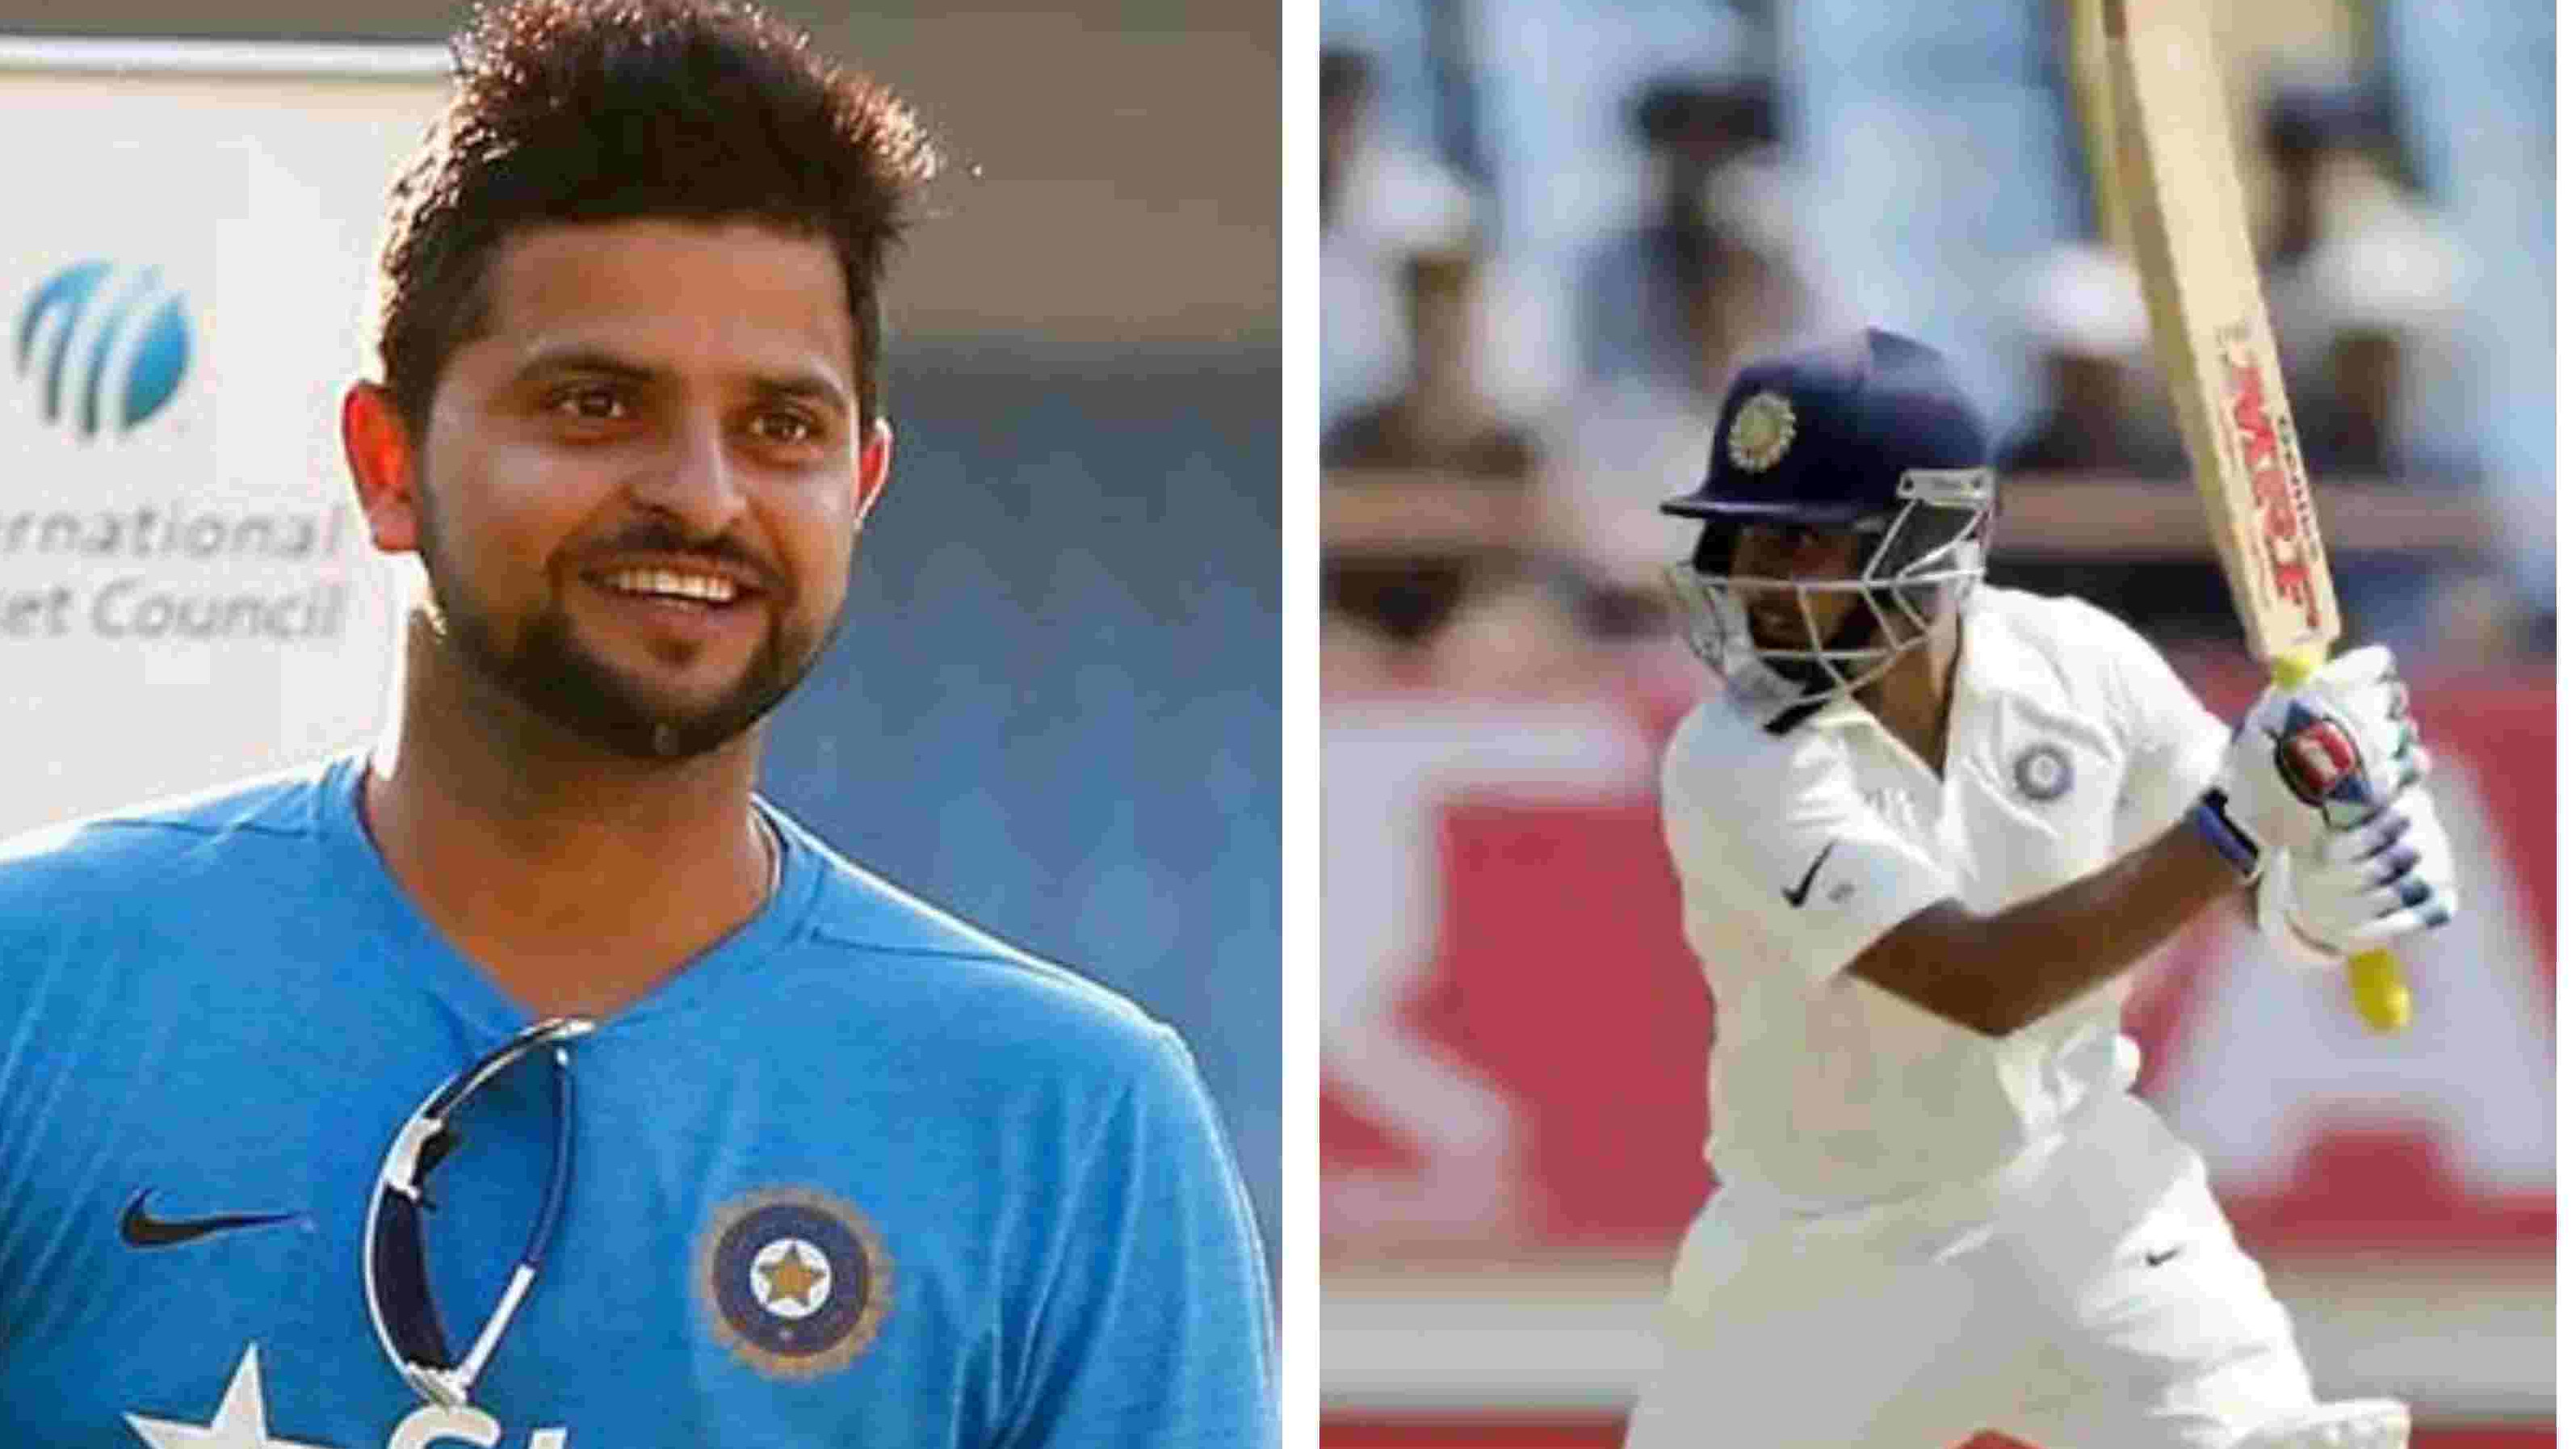 IND v WI 2018: Suresh Raina sees shades of Virender Sehwag in Prithvi Shaw